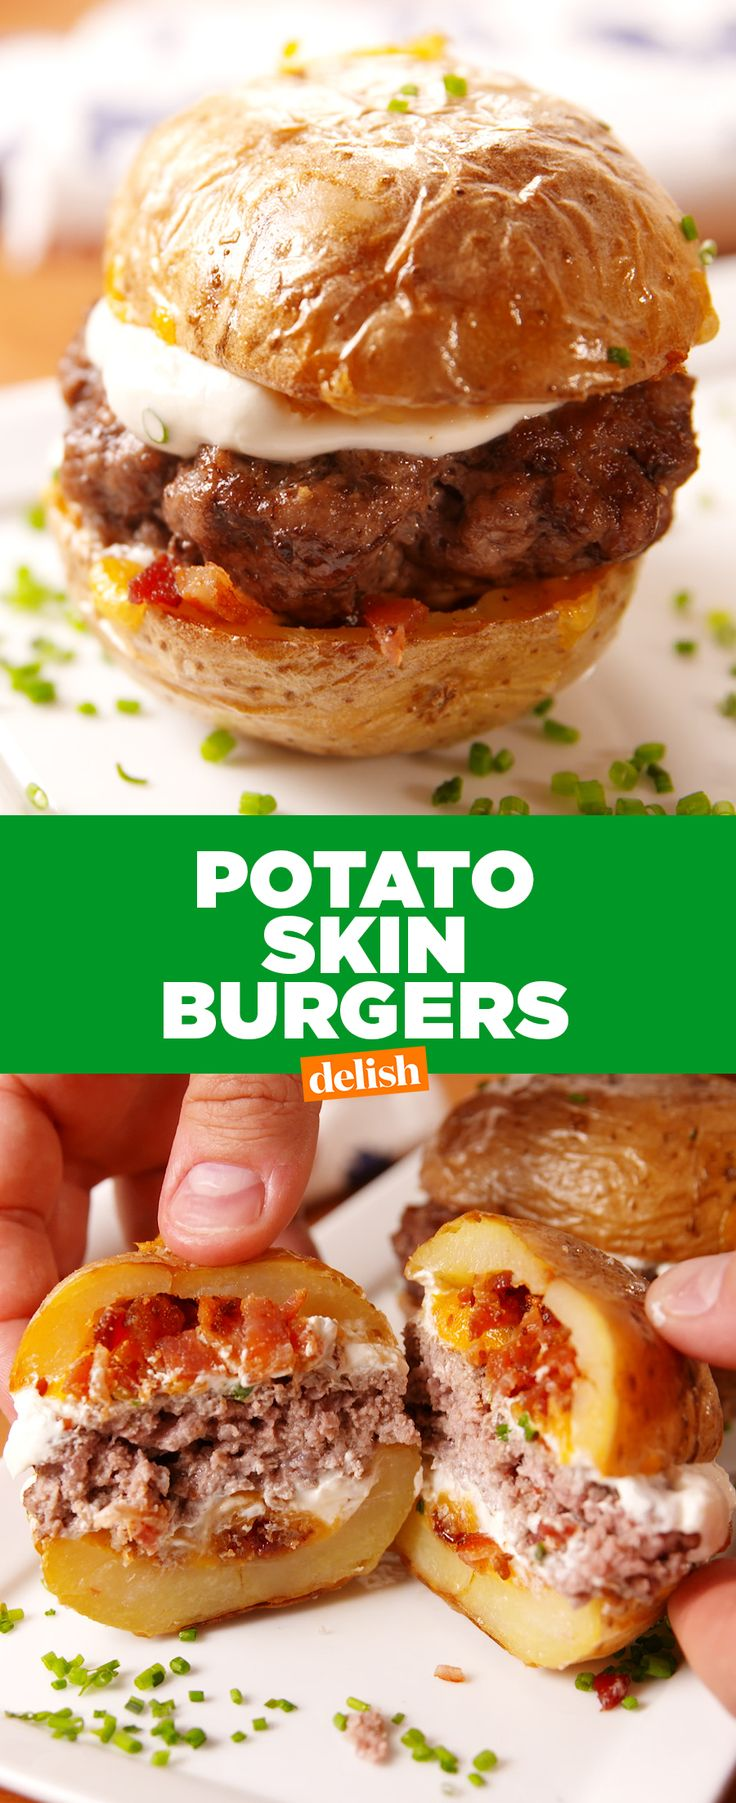 Bet you never thought to do THIS to your burger. Get the recipe at Delish.com.